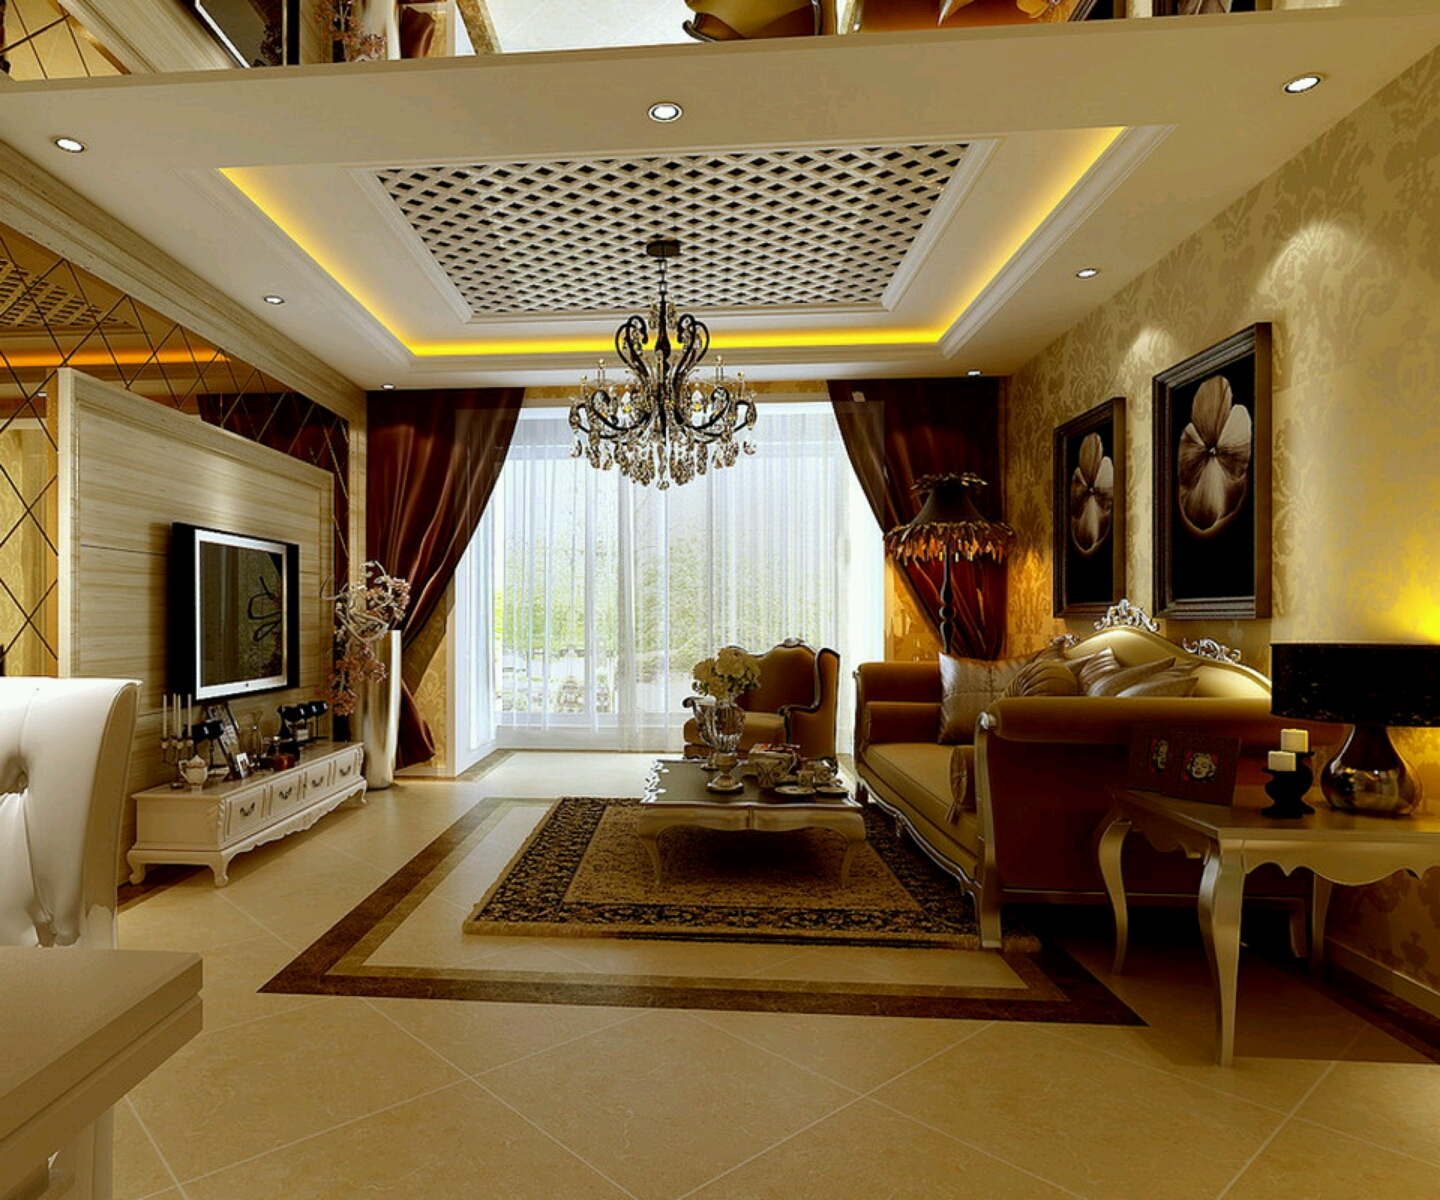 Luxury homes interior decoration living room designs ideas for Interior sitting room designs